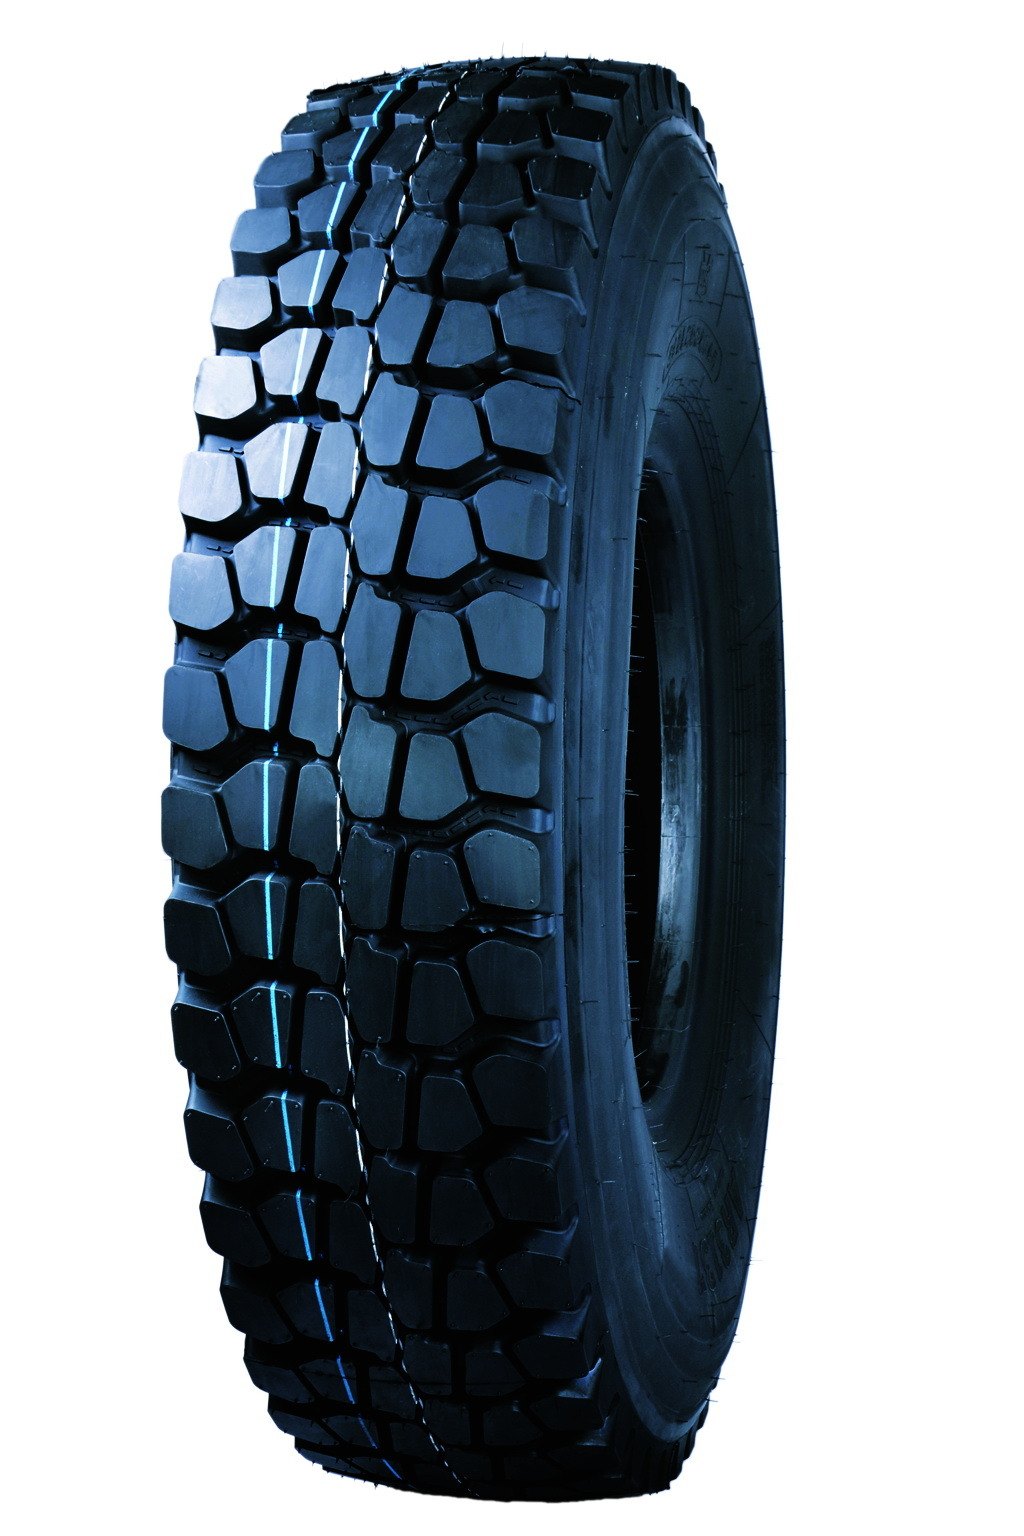 11.00r20 12.00r20 Top Level Heavy Load All Steel Radial TBR Tyre From China